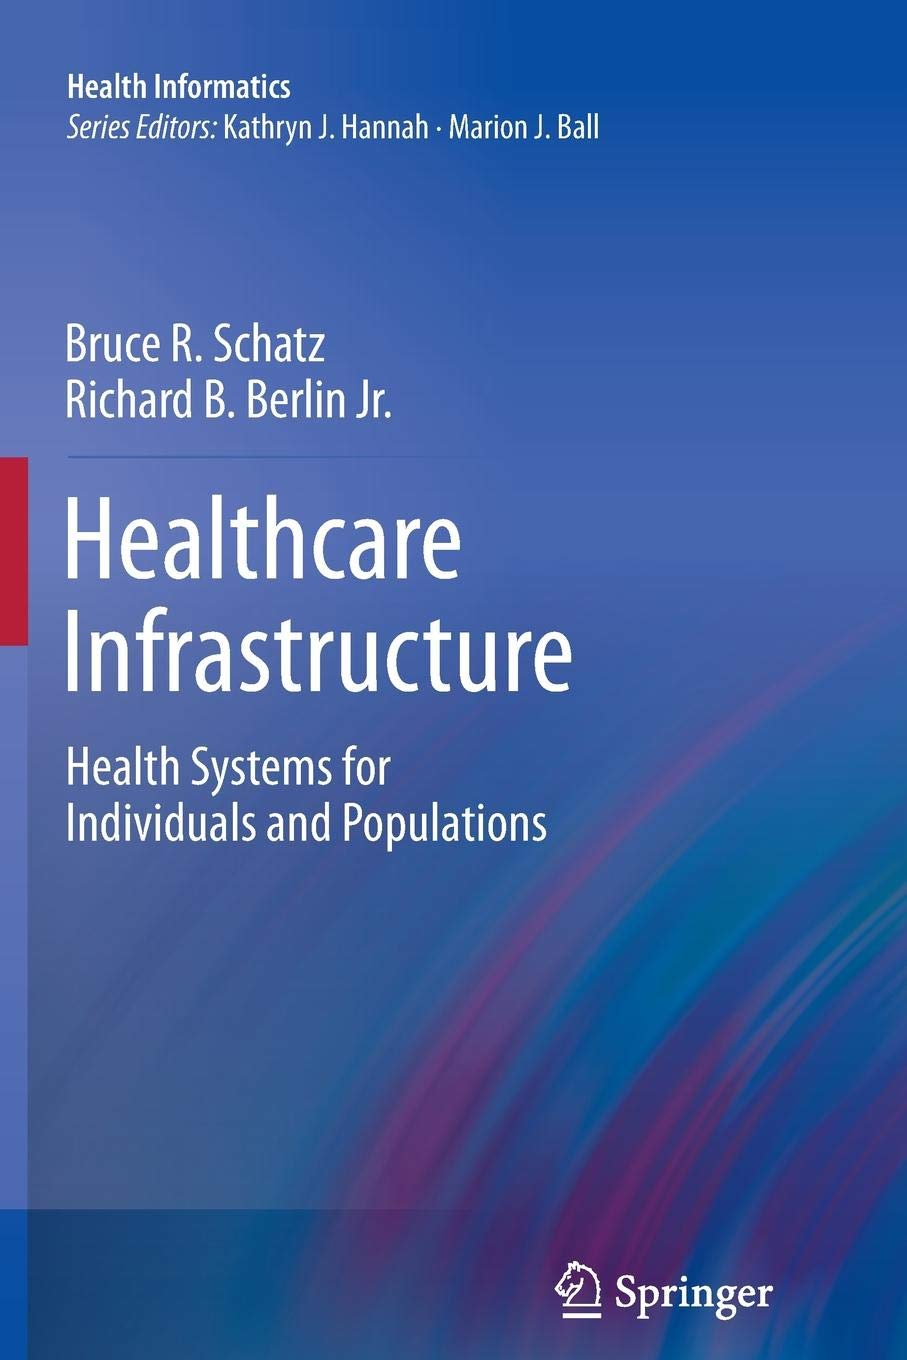 Health Systems for Individuals and Populations